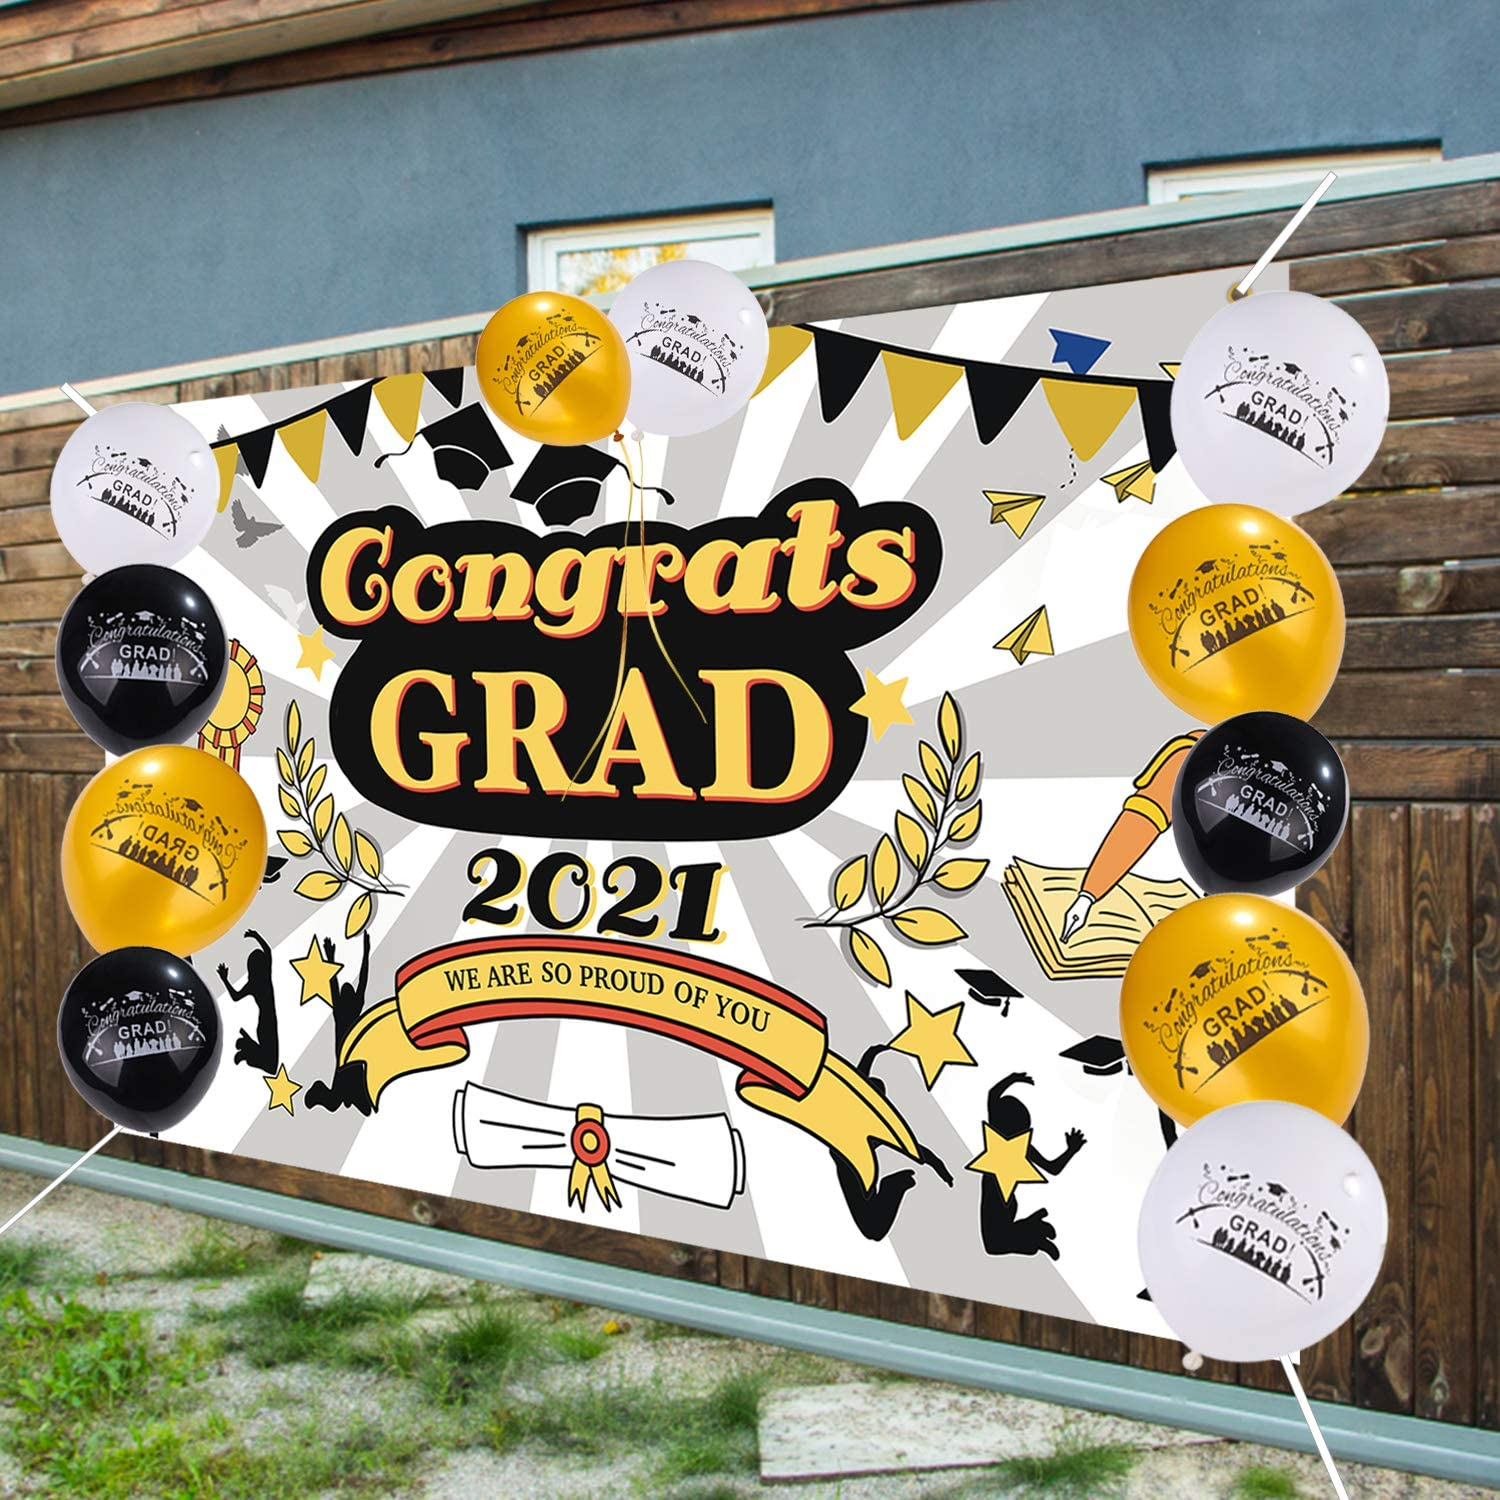 Large Graduation Banner with Balloons 2021 Graduation Backdrop for College High School Graduation Decorations Party Supplies Indoor Outdoor Graduation Banner Decorations Balloons Class of 2021